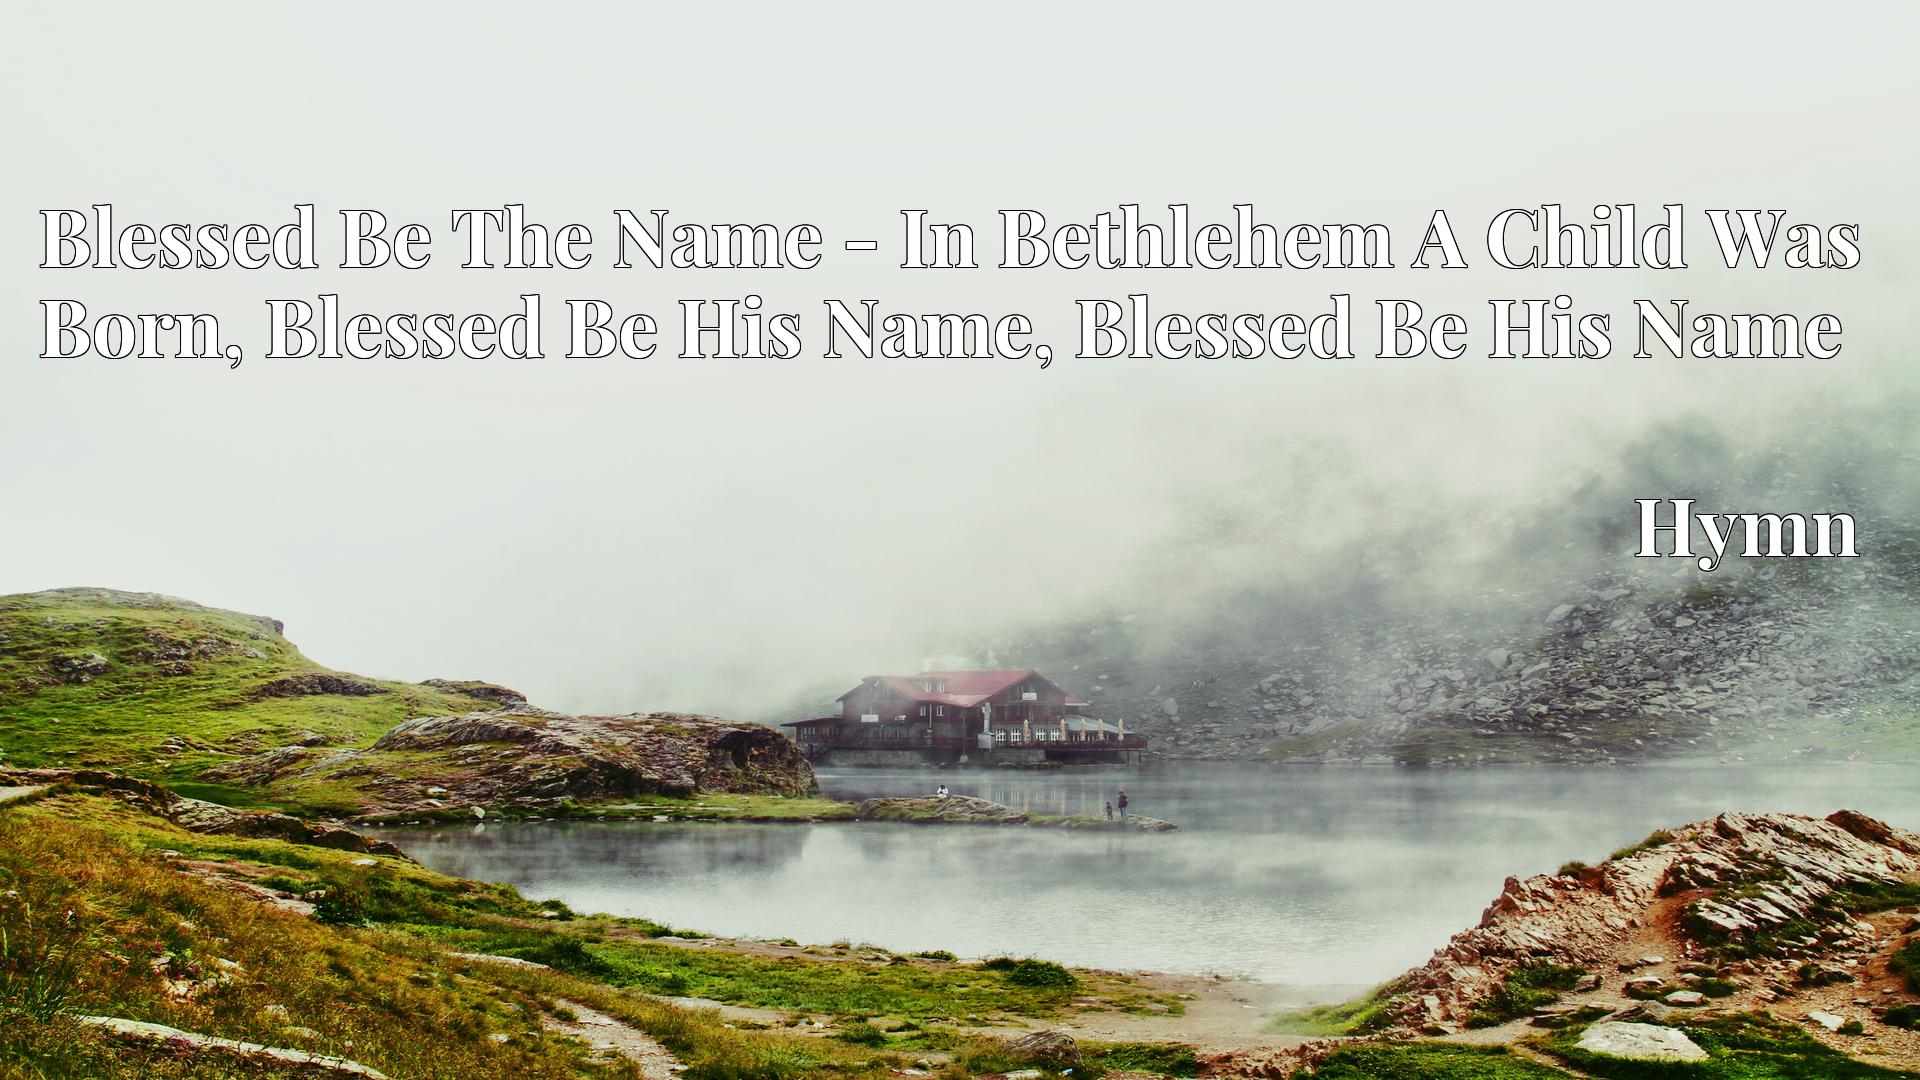 Blessed Be The Name - In Bethlehem A Child Was Born, Blessed Be His Name, Blessed Be His Name Hymn